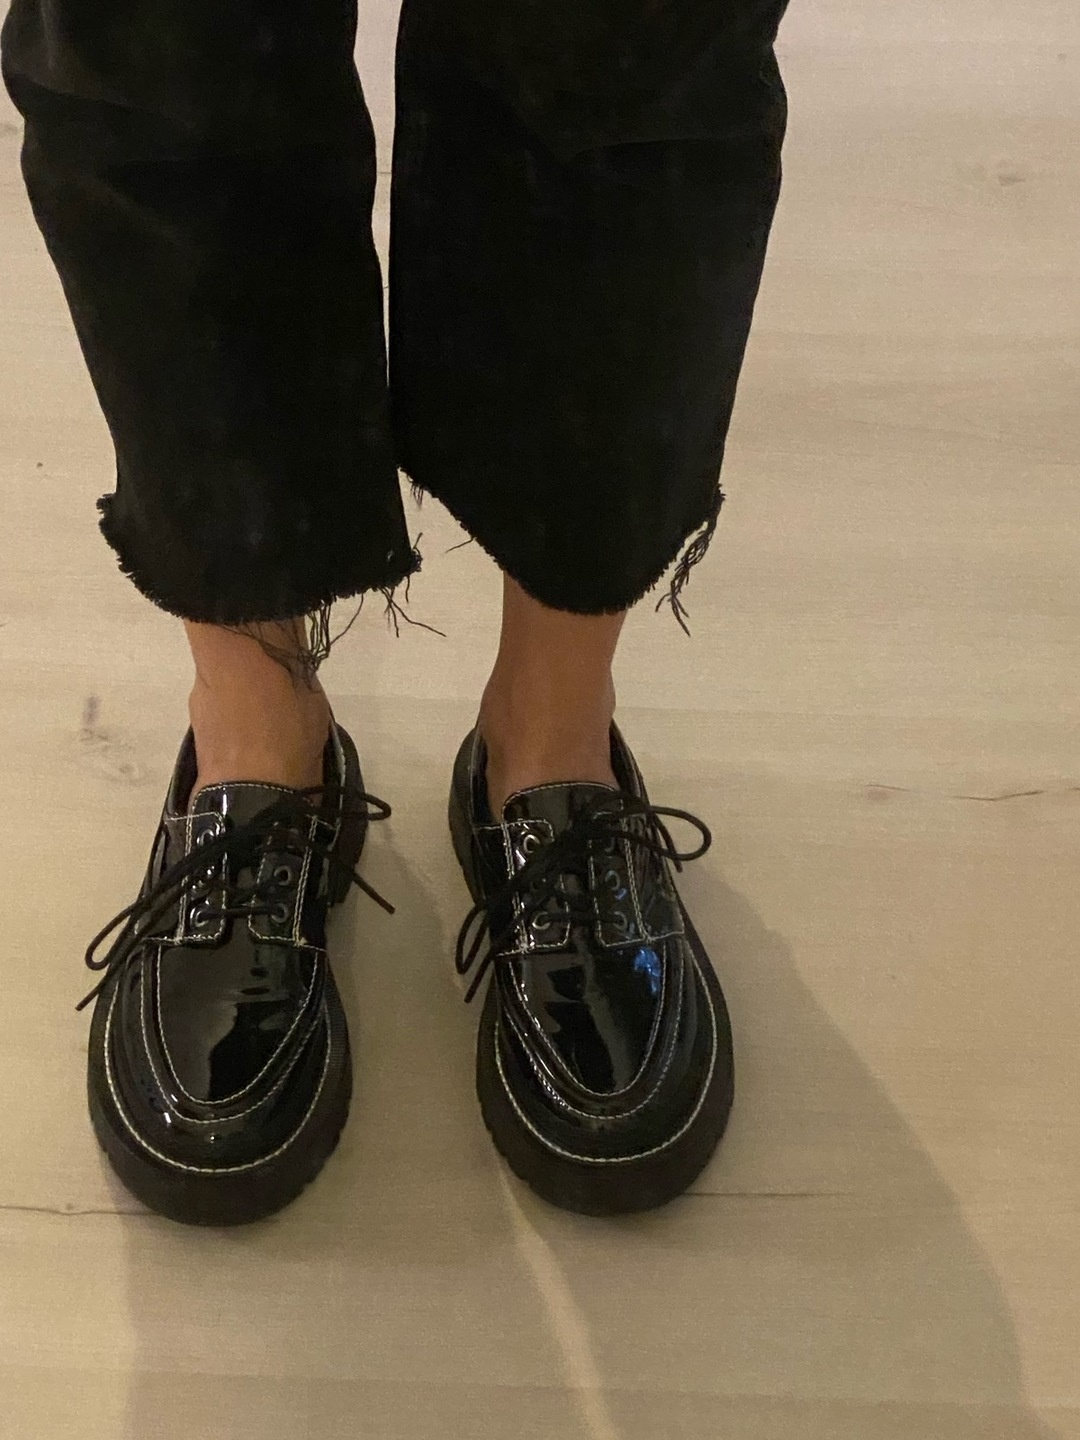 Women's sneakers - ZARA photo 1